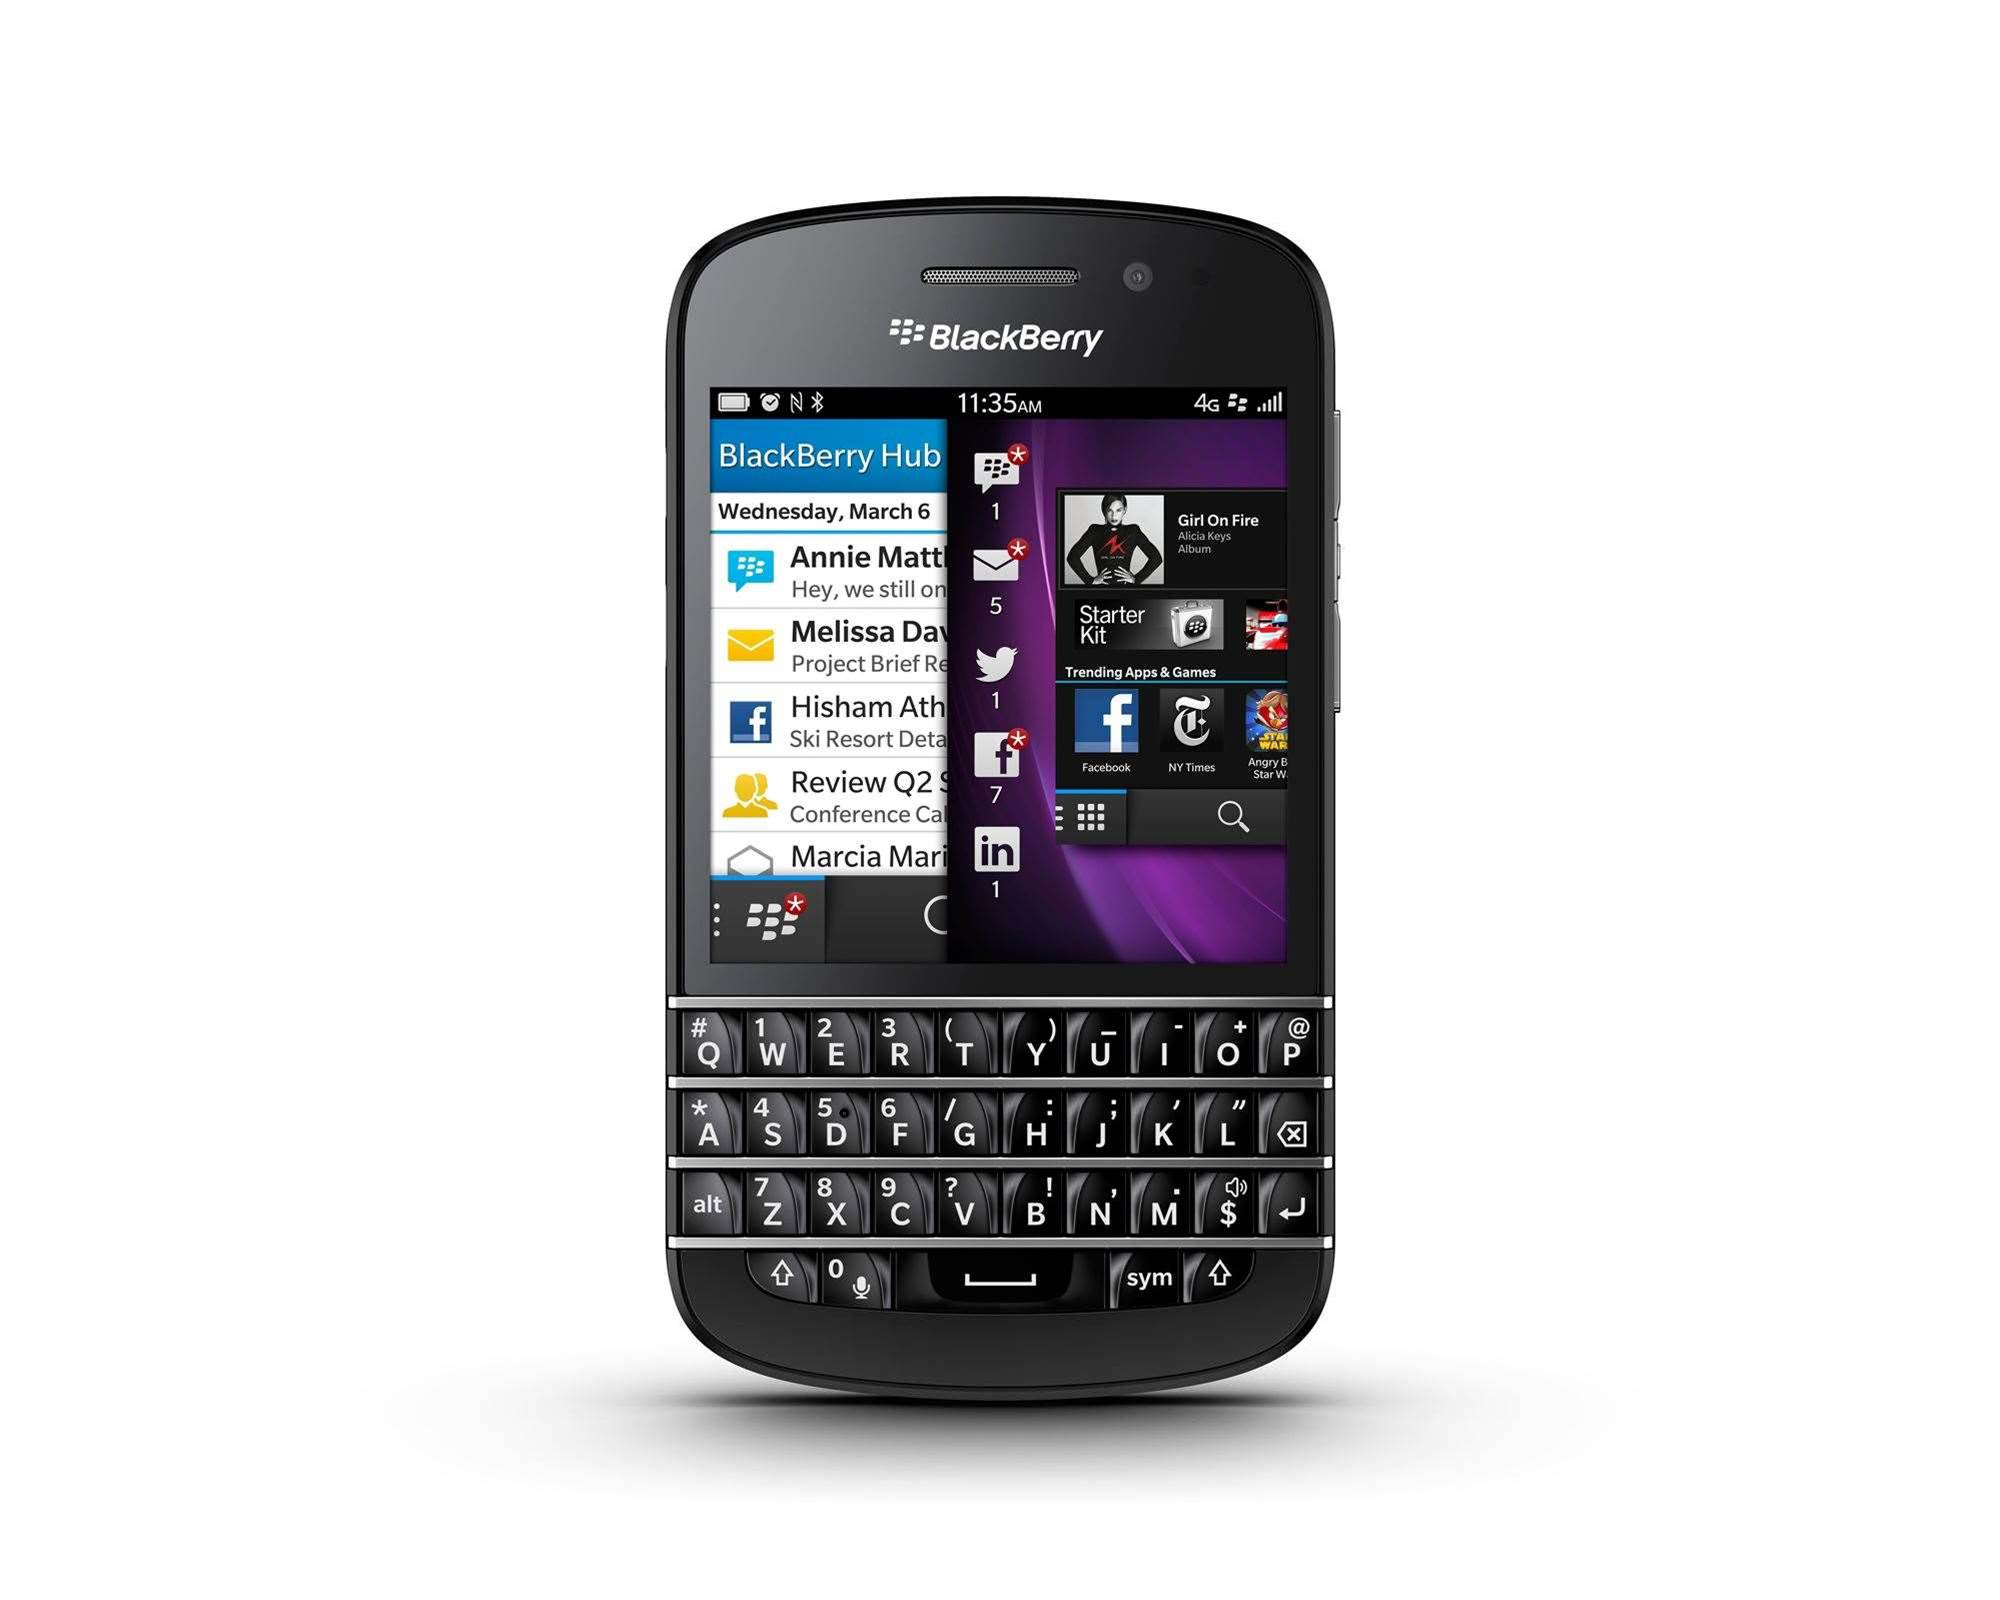 In pictures: Blackberry Q10